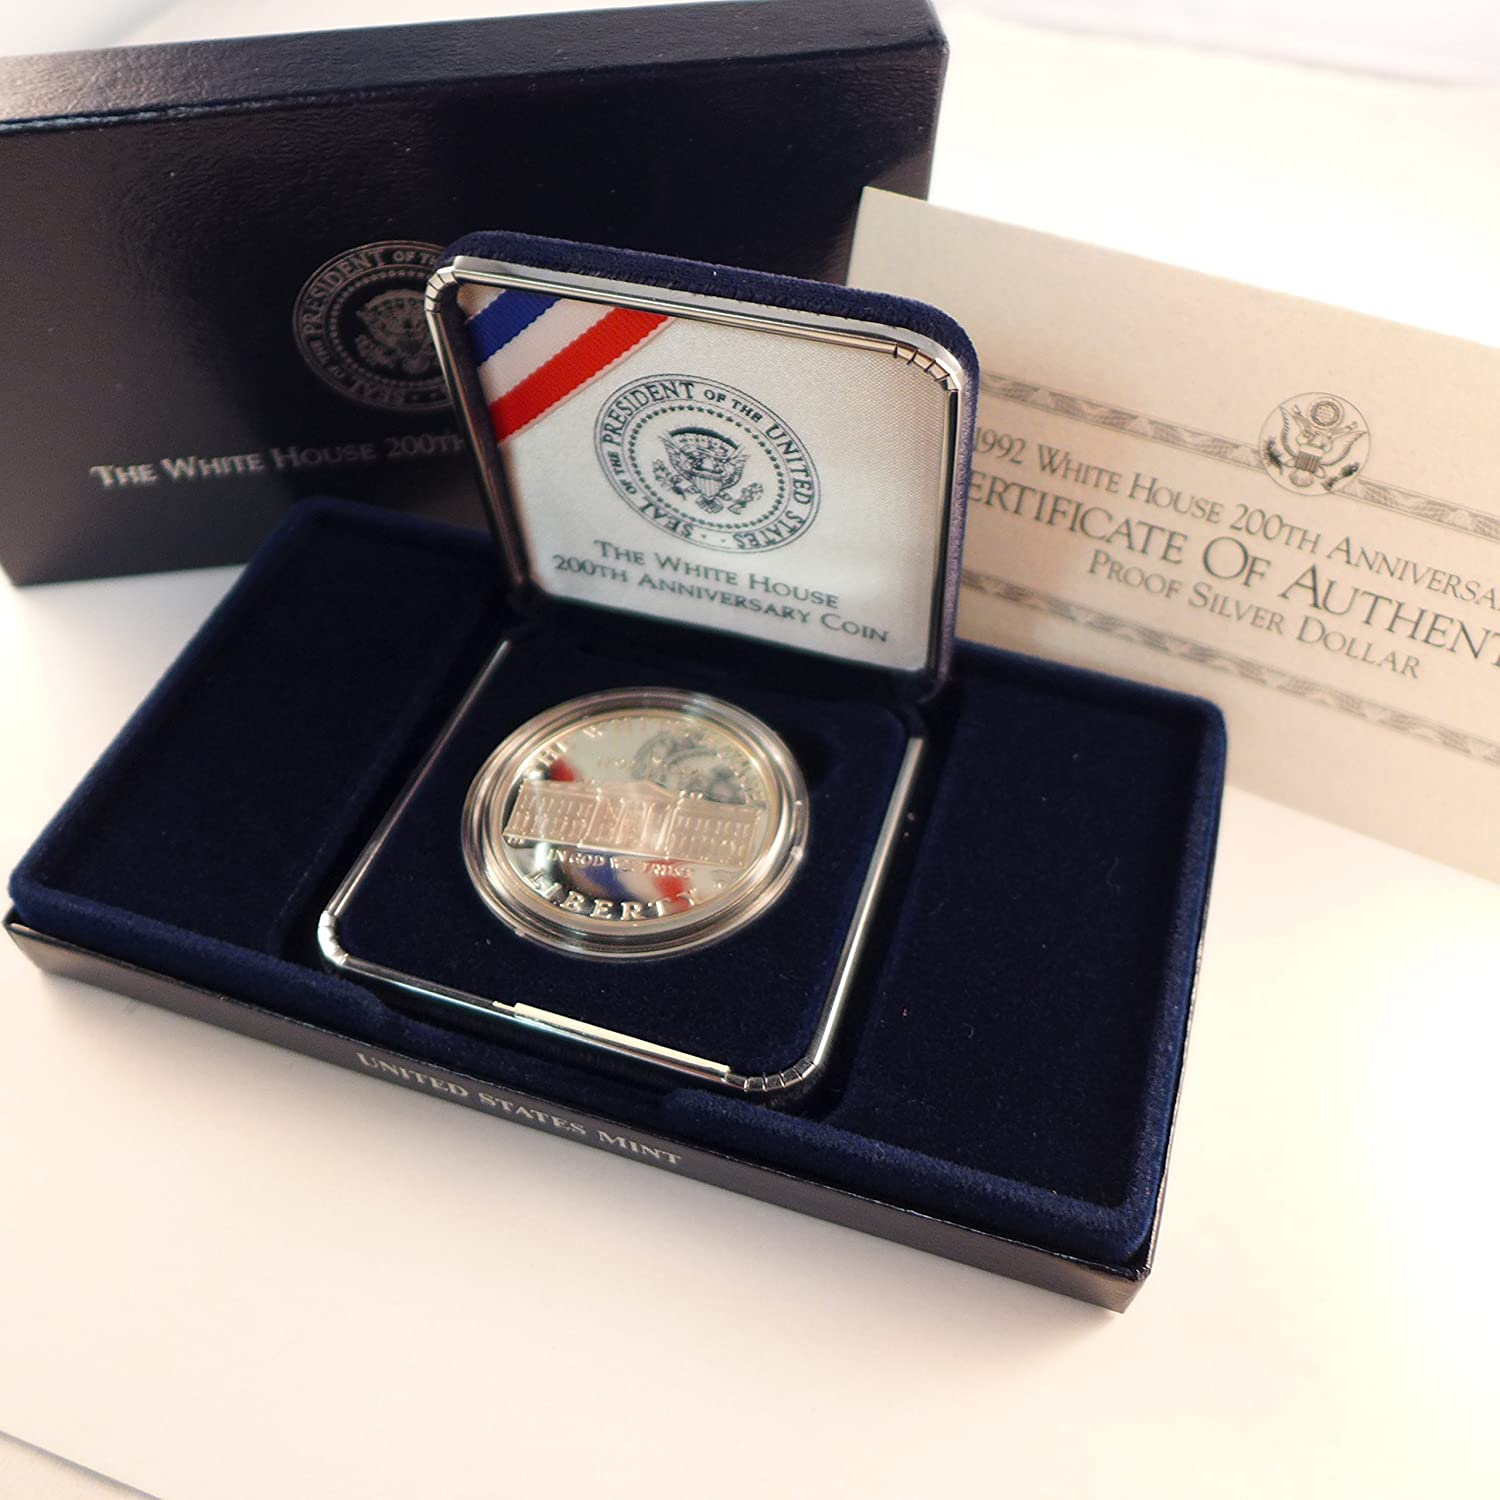 1992 S White House Commemorative Silver Dollar $1 Proof US Mint